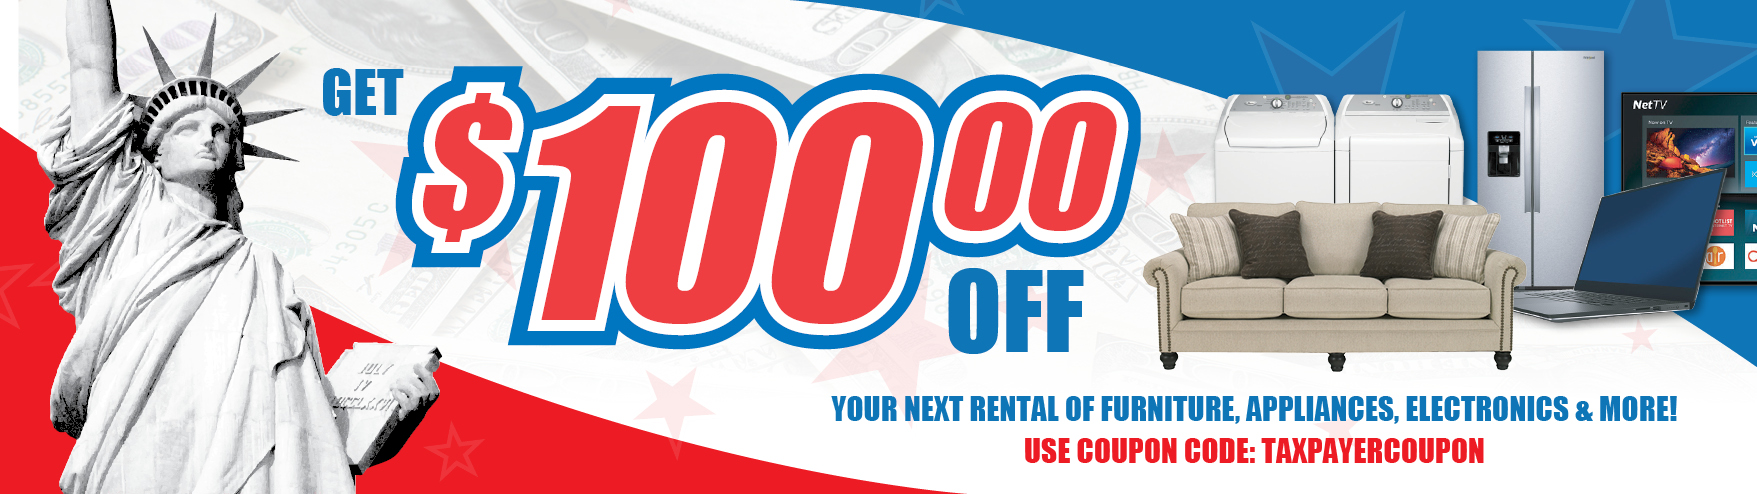 Save Now with our Current Offer